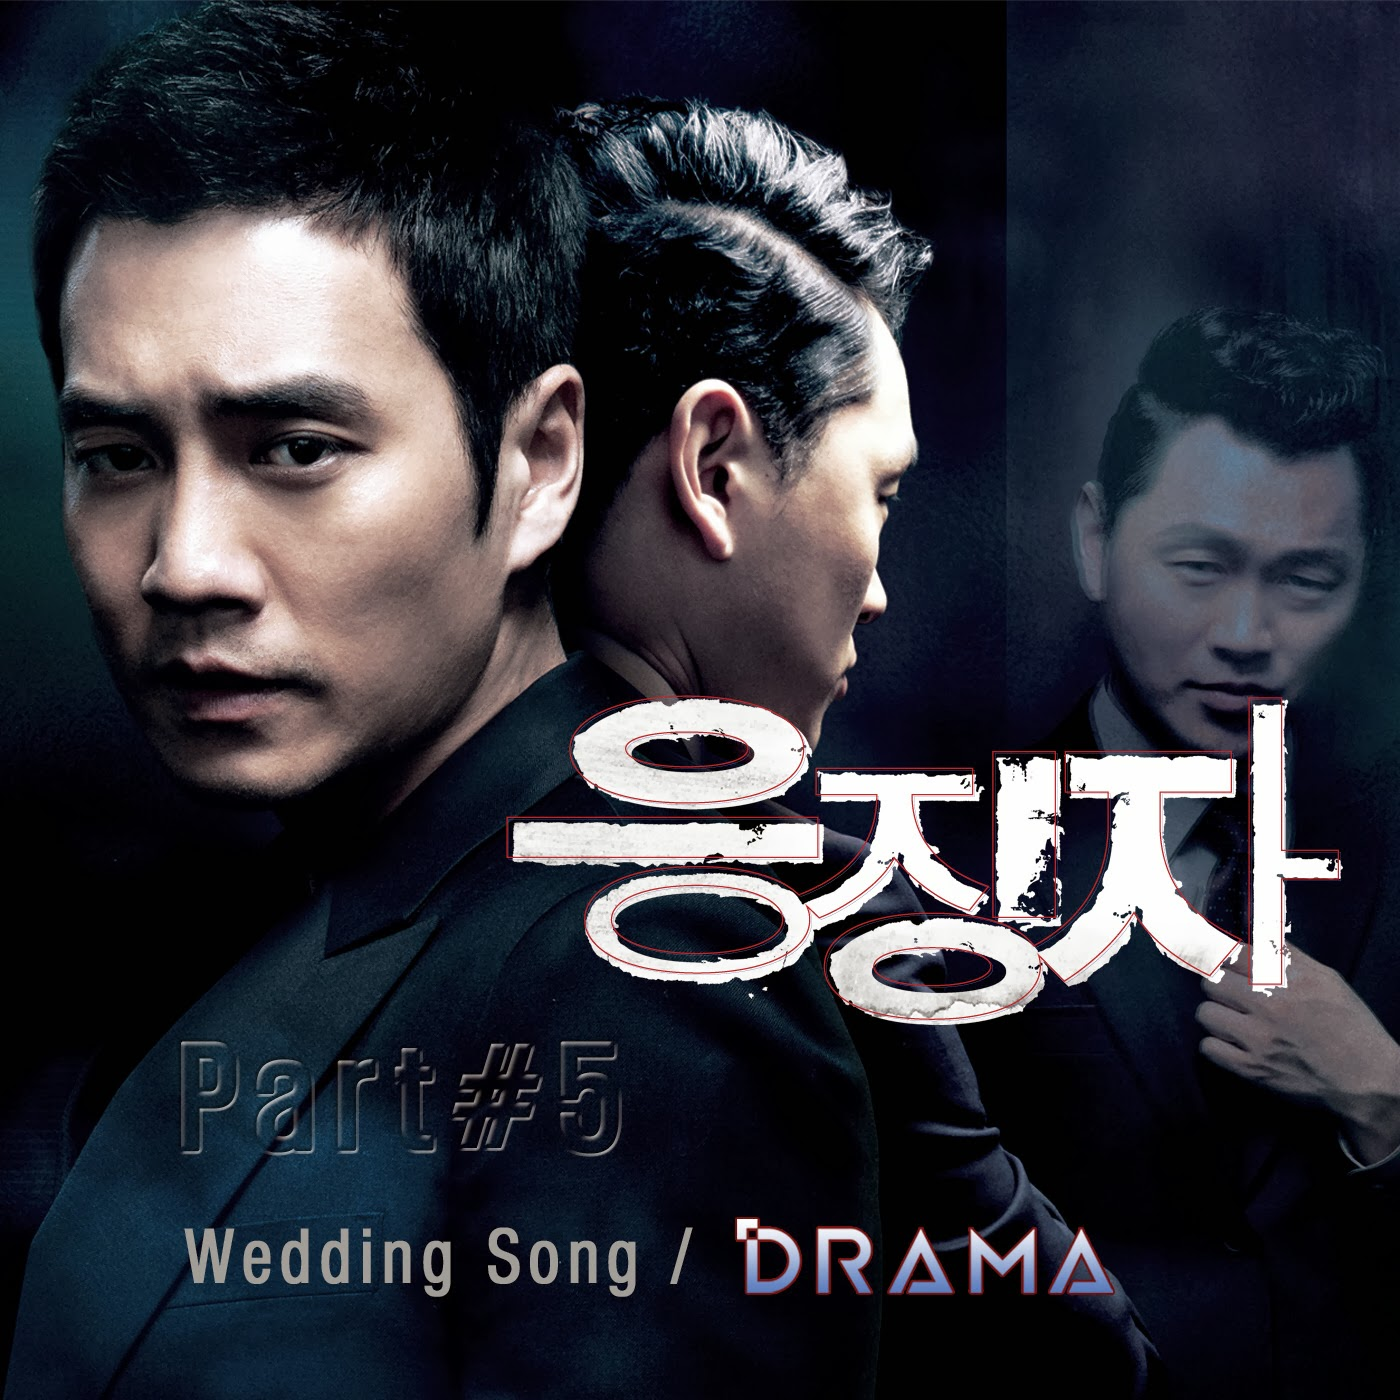 Best Wedding Songs 2013: Korean Lyrics Love Miko: Drama